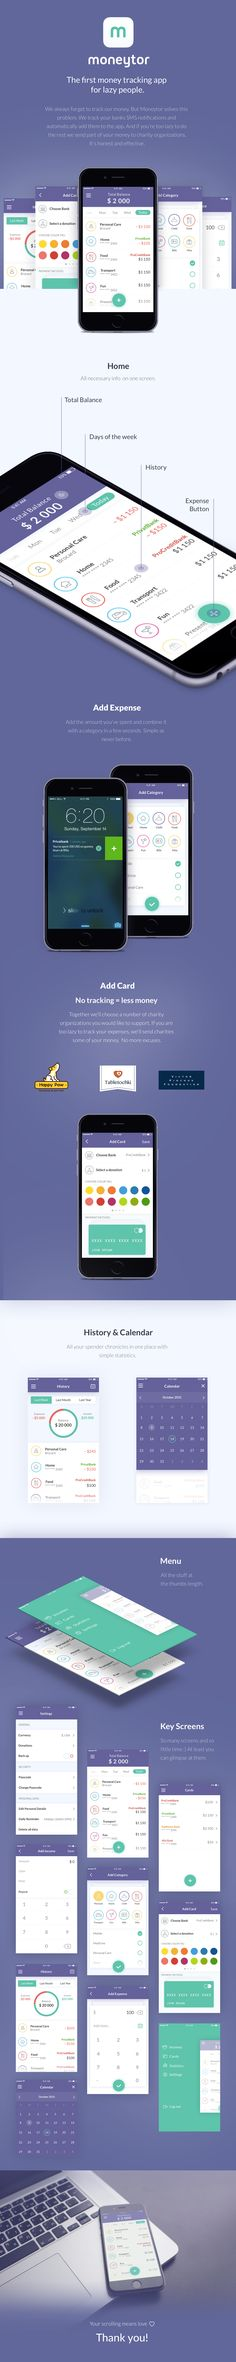 Moneytor Expenses tracking app for lazy people on Behance